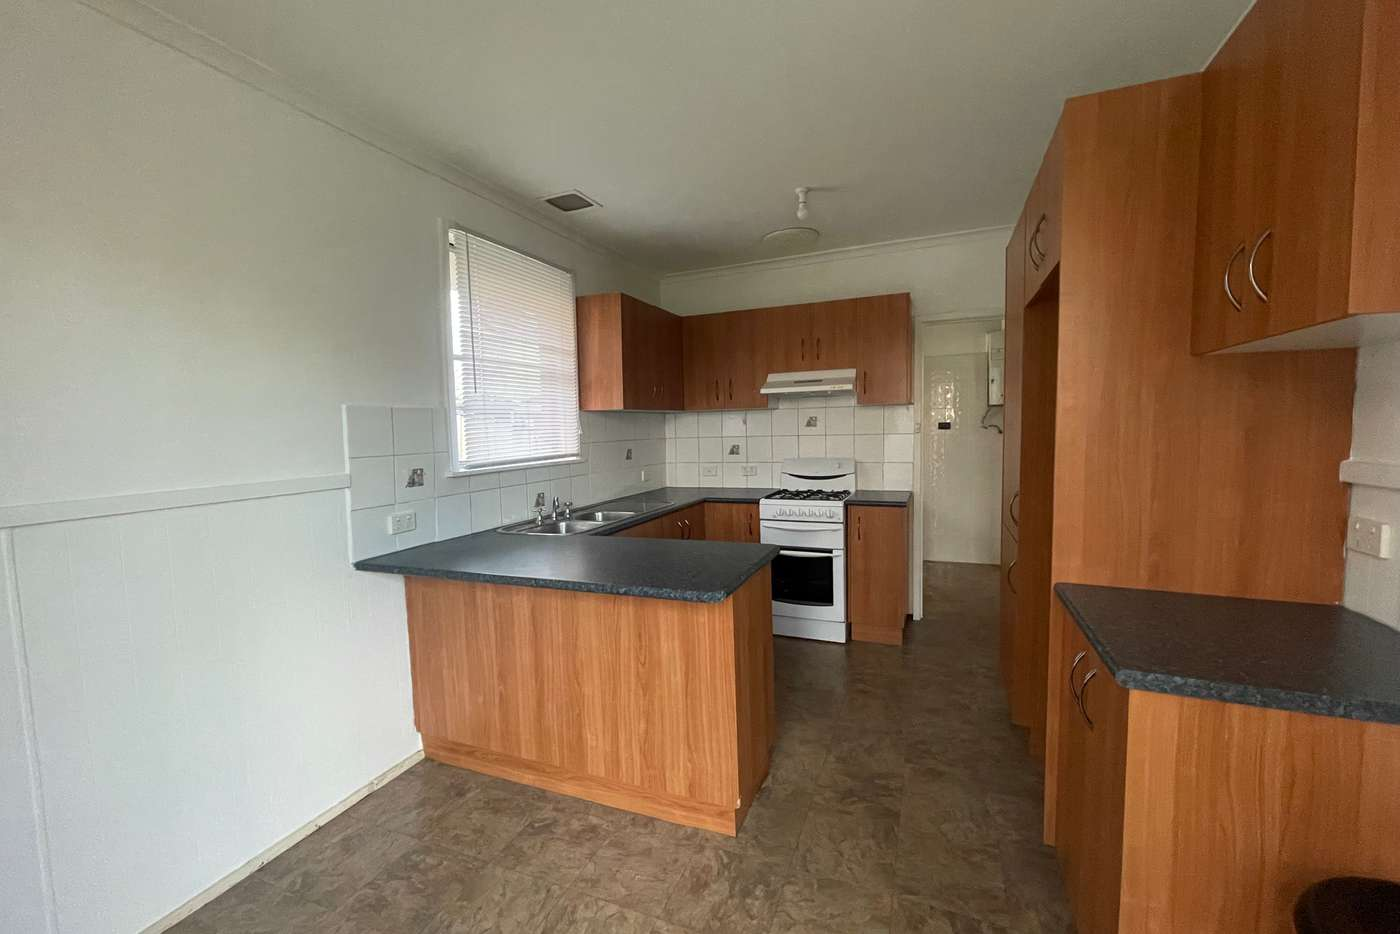 Main view of Homely house listing, 27 Bladin Street, Laverton VIC 3028